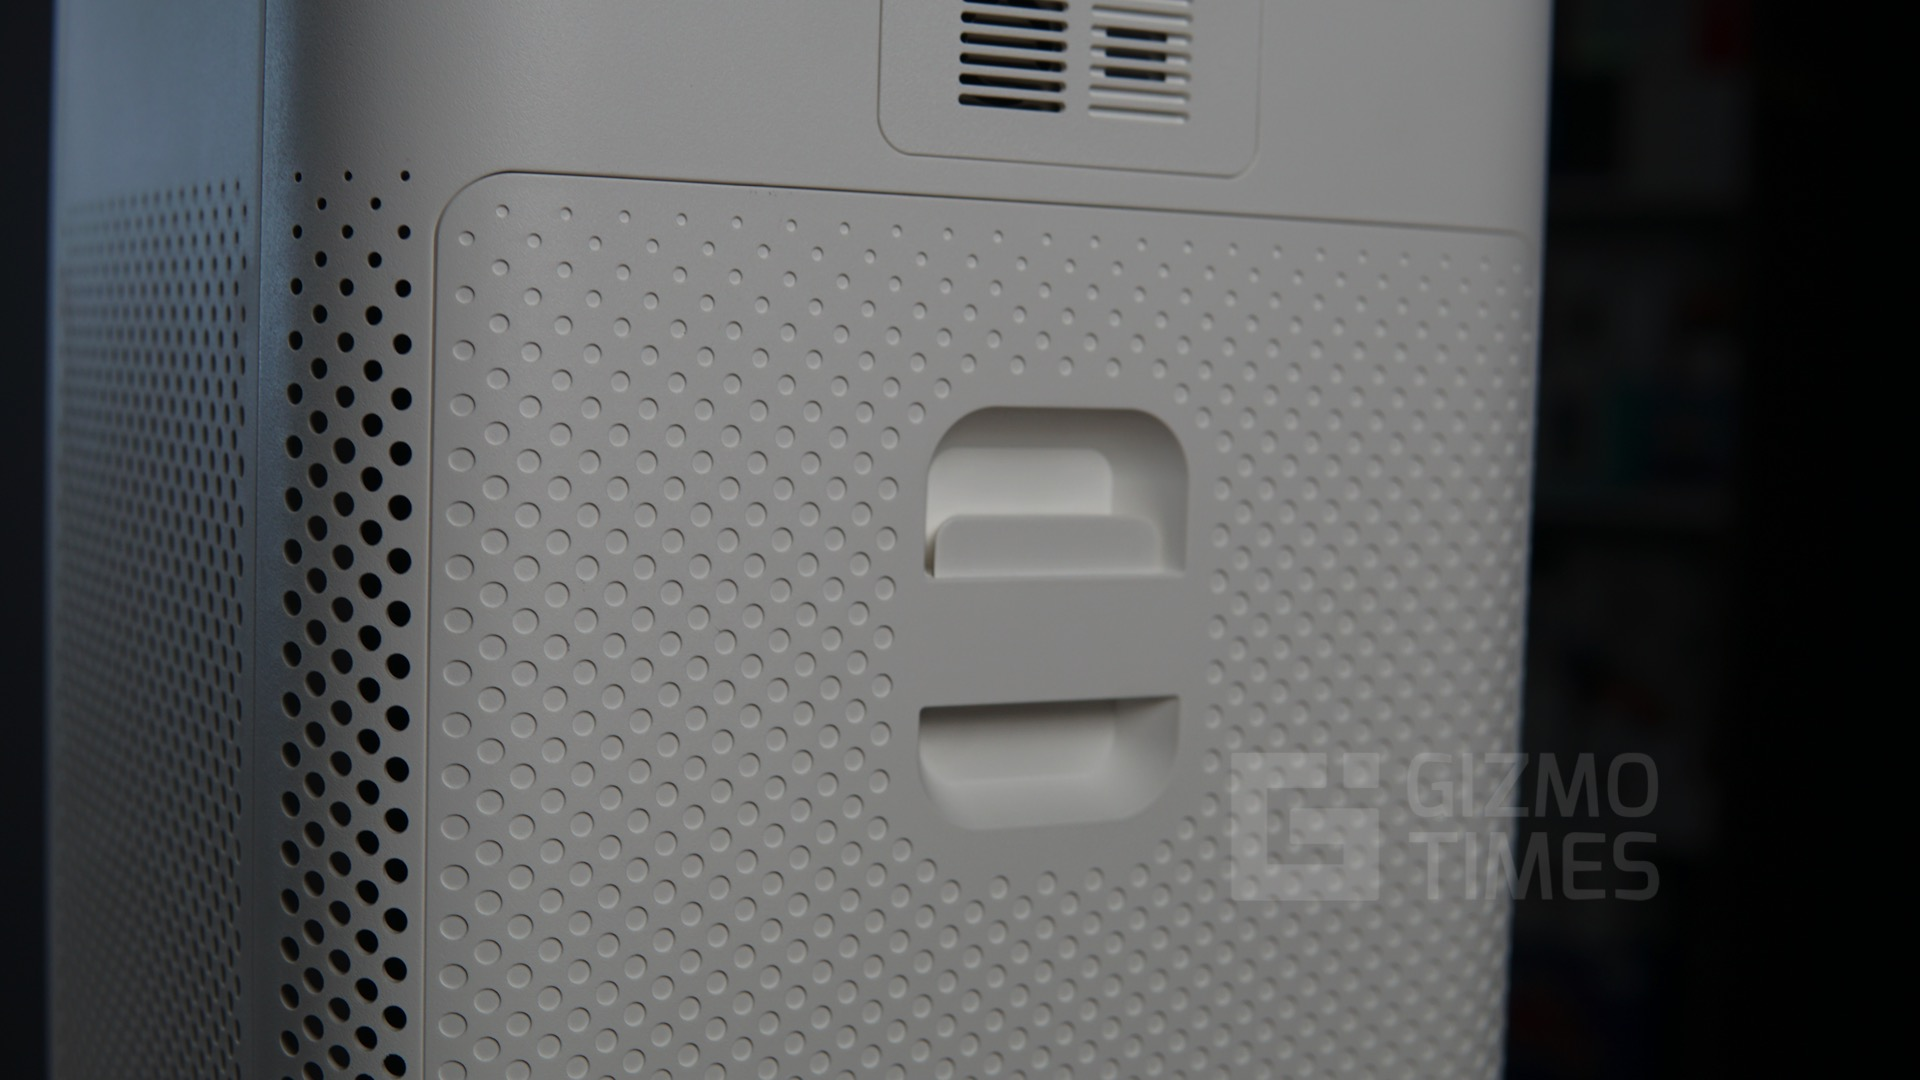 Mi Air Purifier 3 filter cover